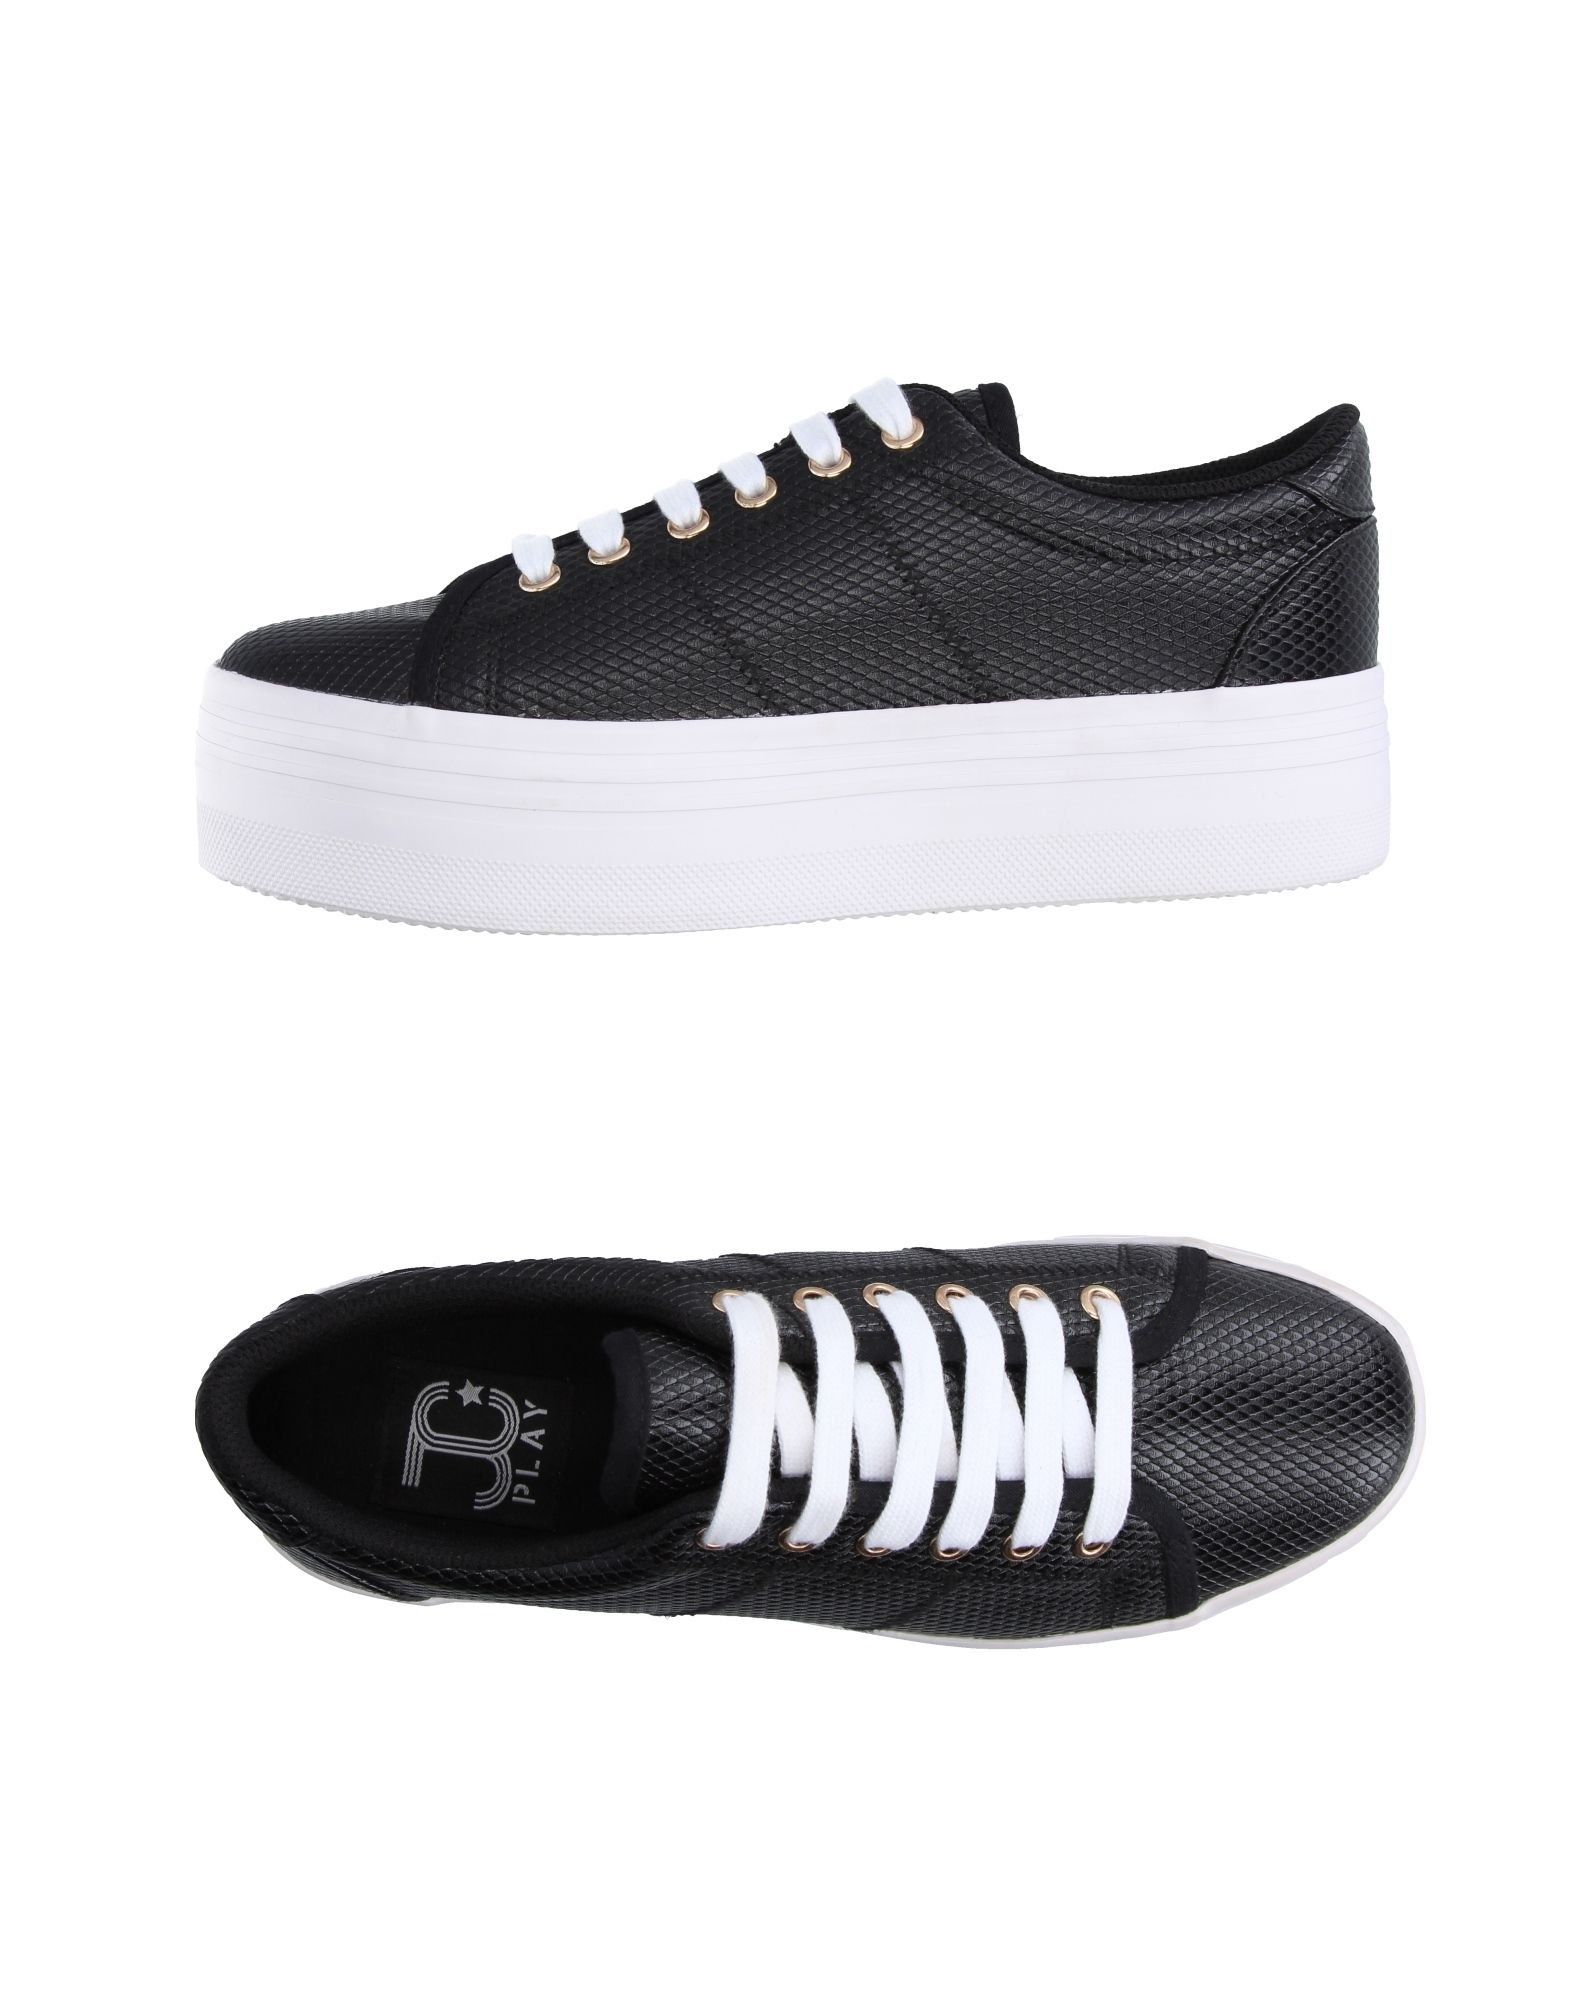 Jc Sneakers Play By Jeffrey Campbell Sneakers Jc - Women Jc Play By Jeffrey Campbell Sneakers online on  Canada - 11229645VE 1b6afa